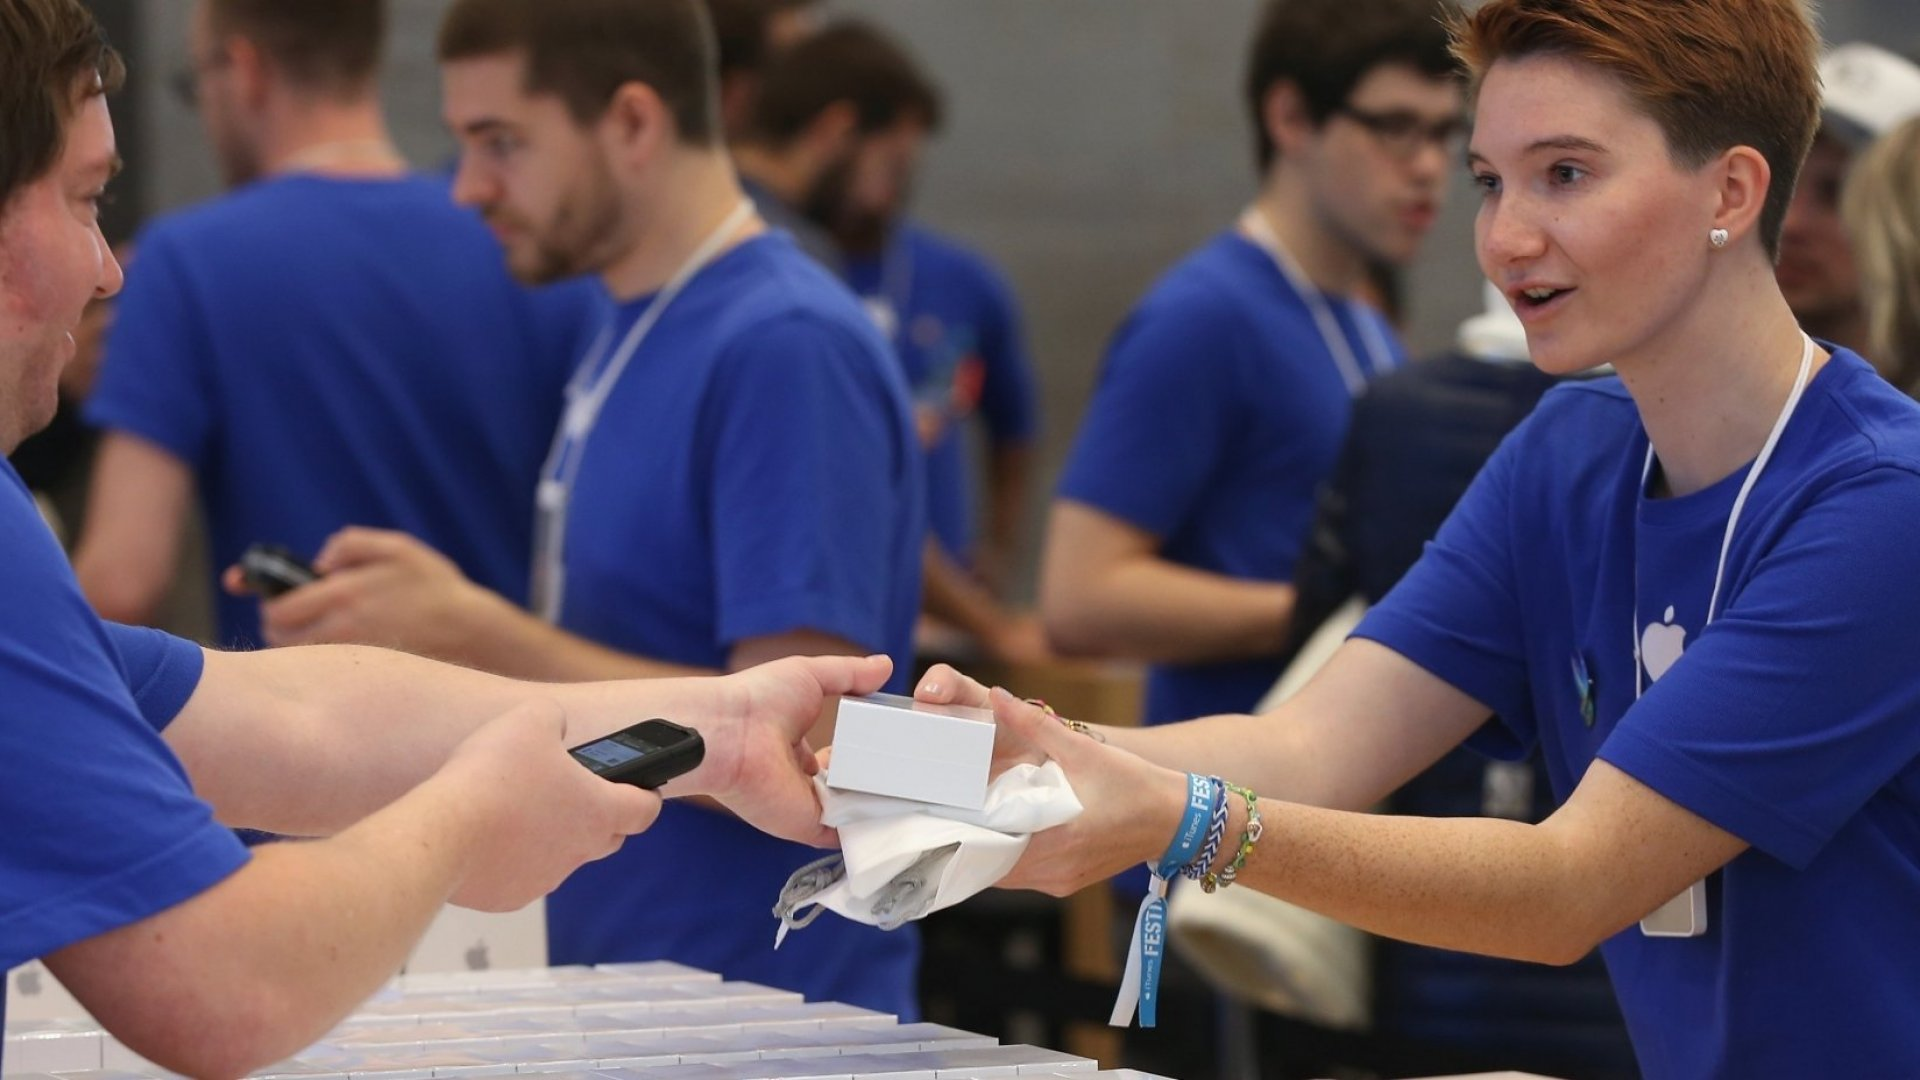 The 11 Weirdest Aspects of Working at an Apple Store